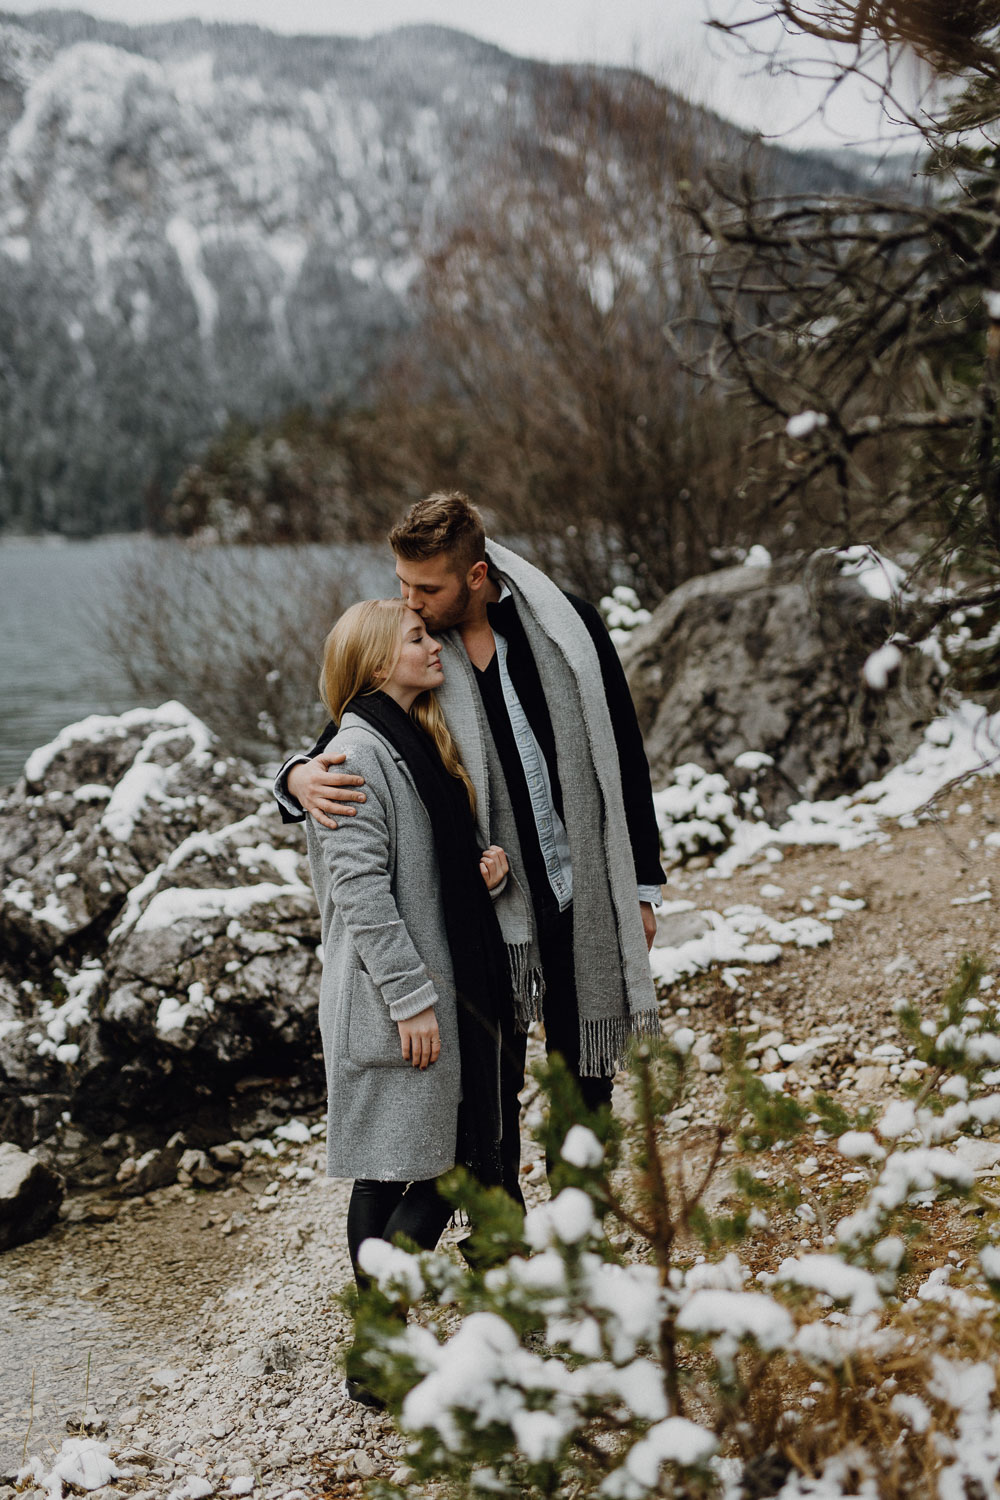 raissa simon photography destination couple munich eibsee 025 - Laura + Dominik